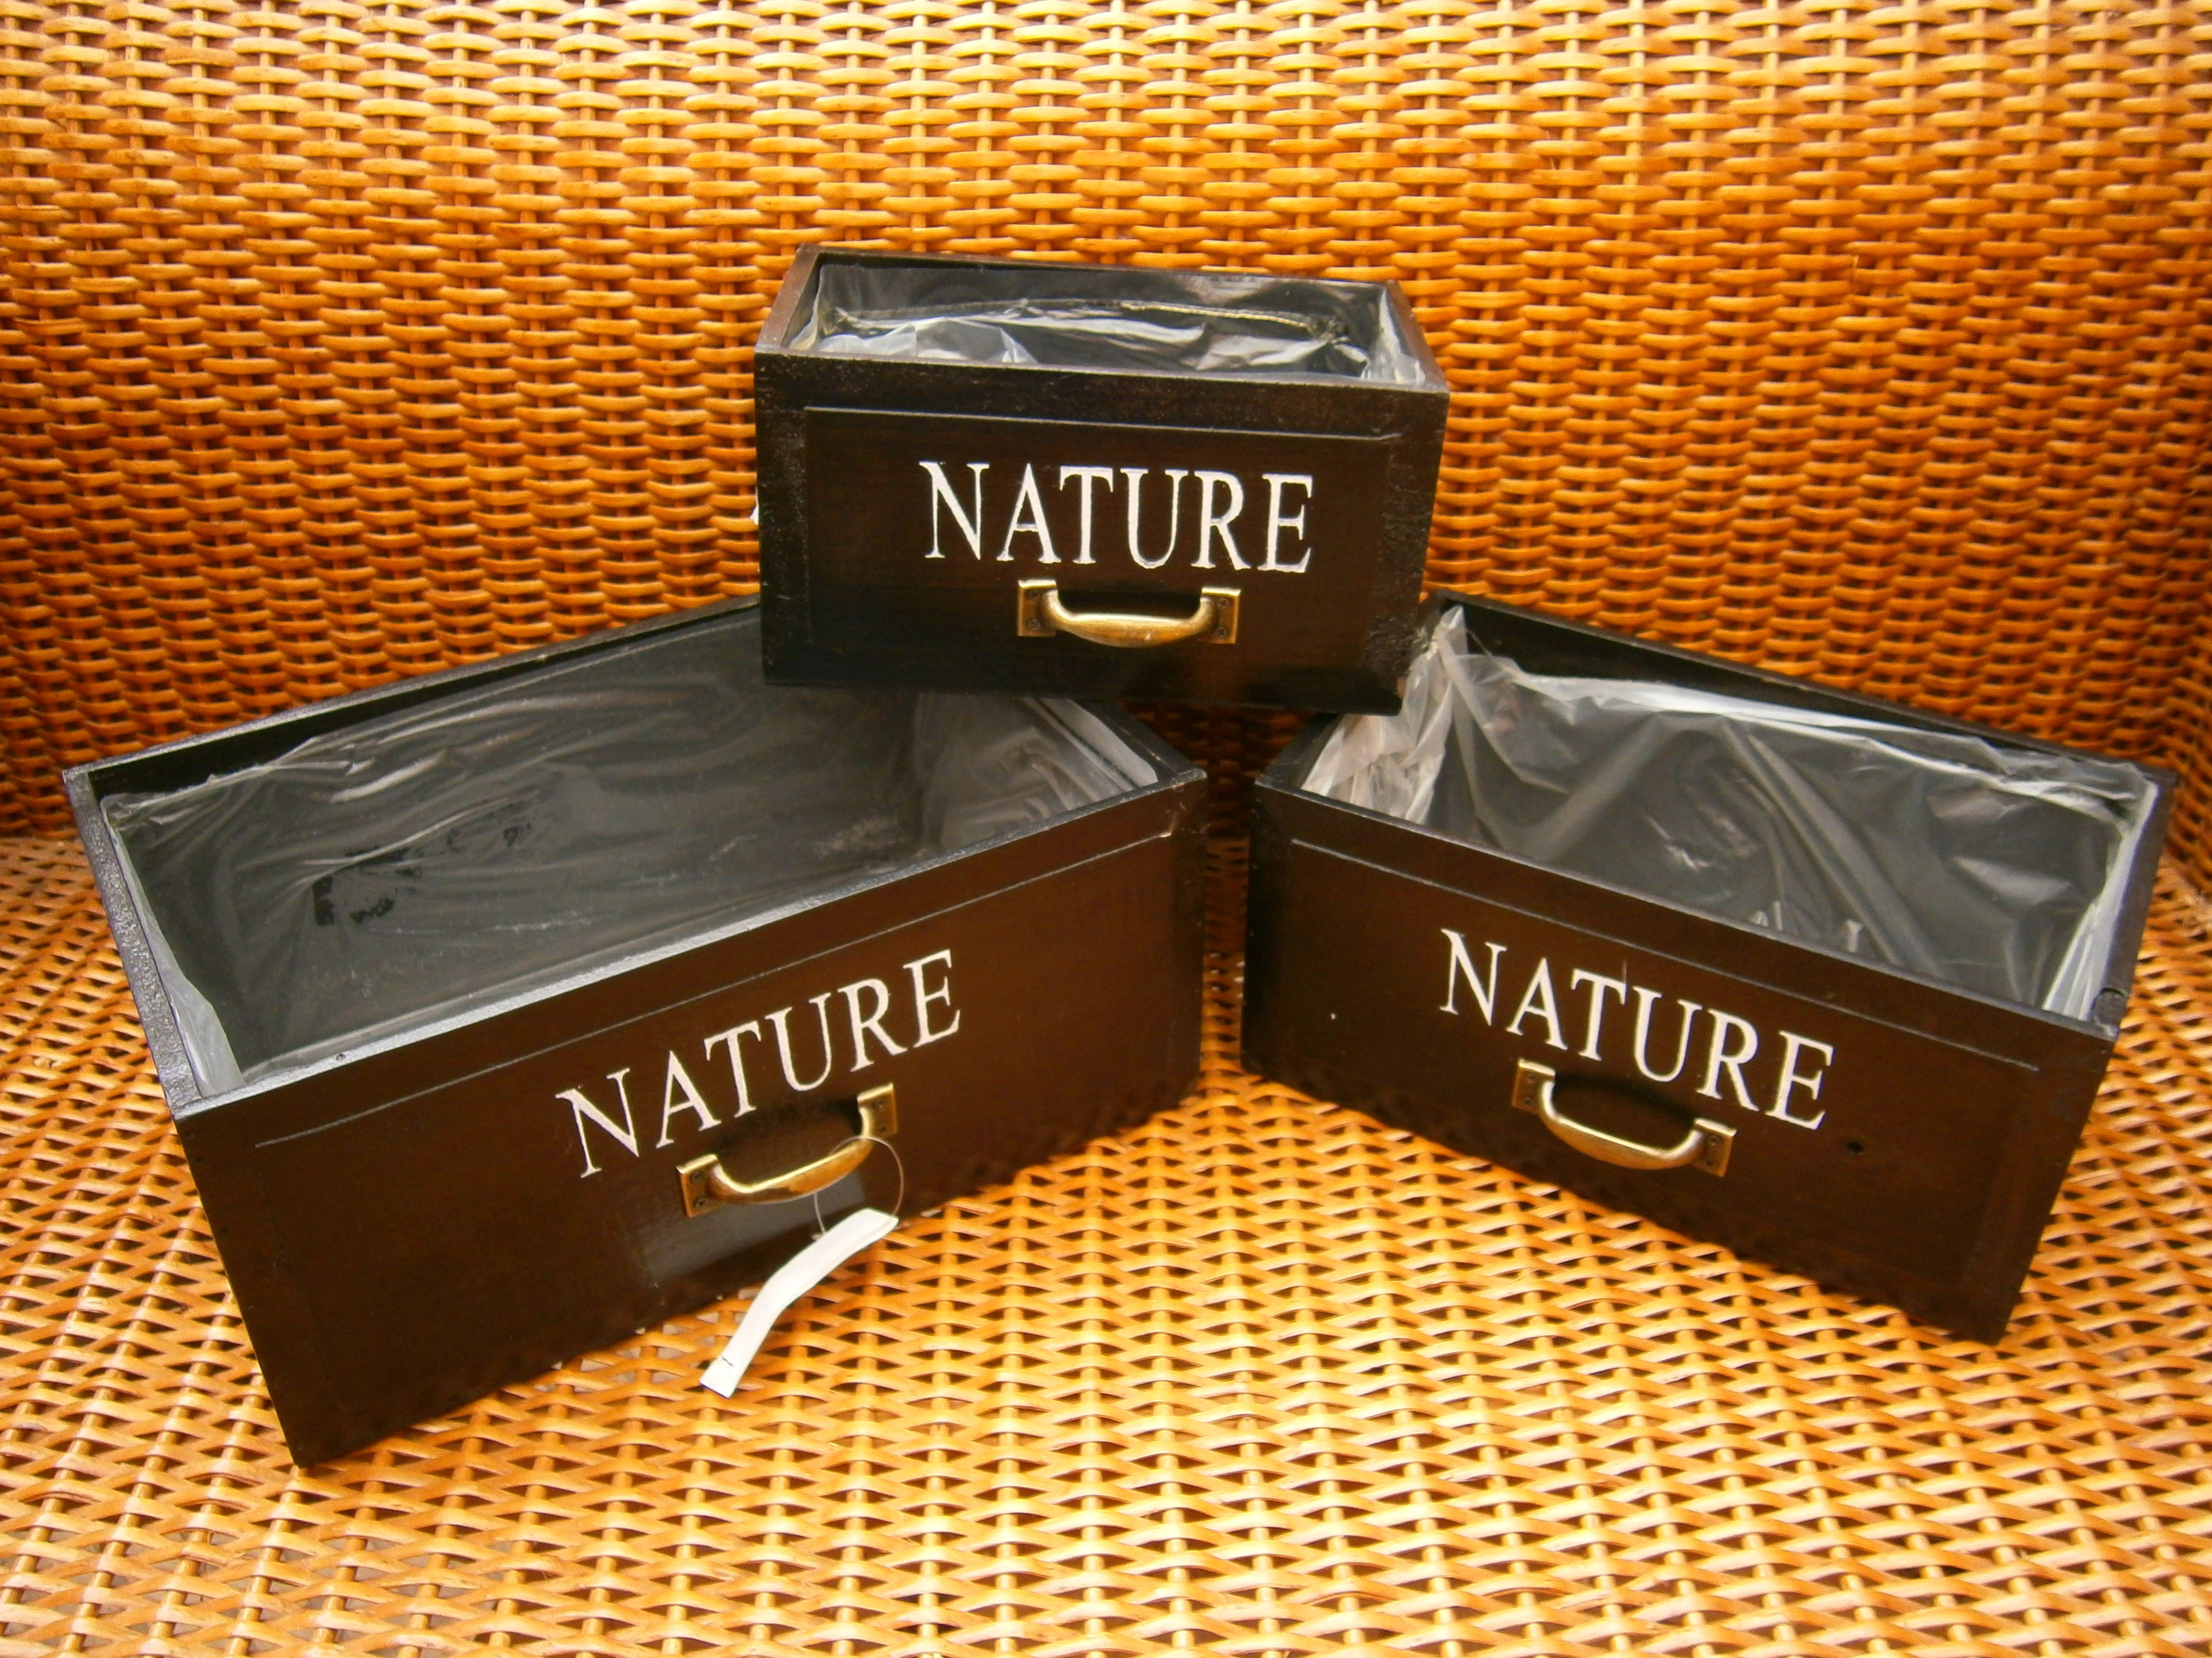 LOTE 3 CAJAS NATURE ASA METAL COLOR NEGRO G32X20X14